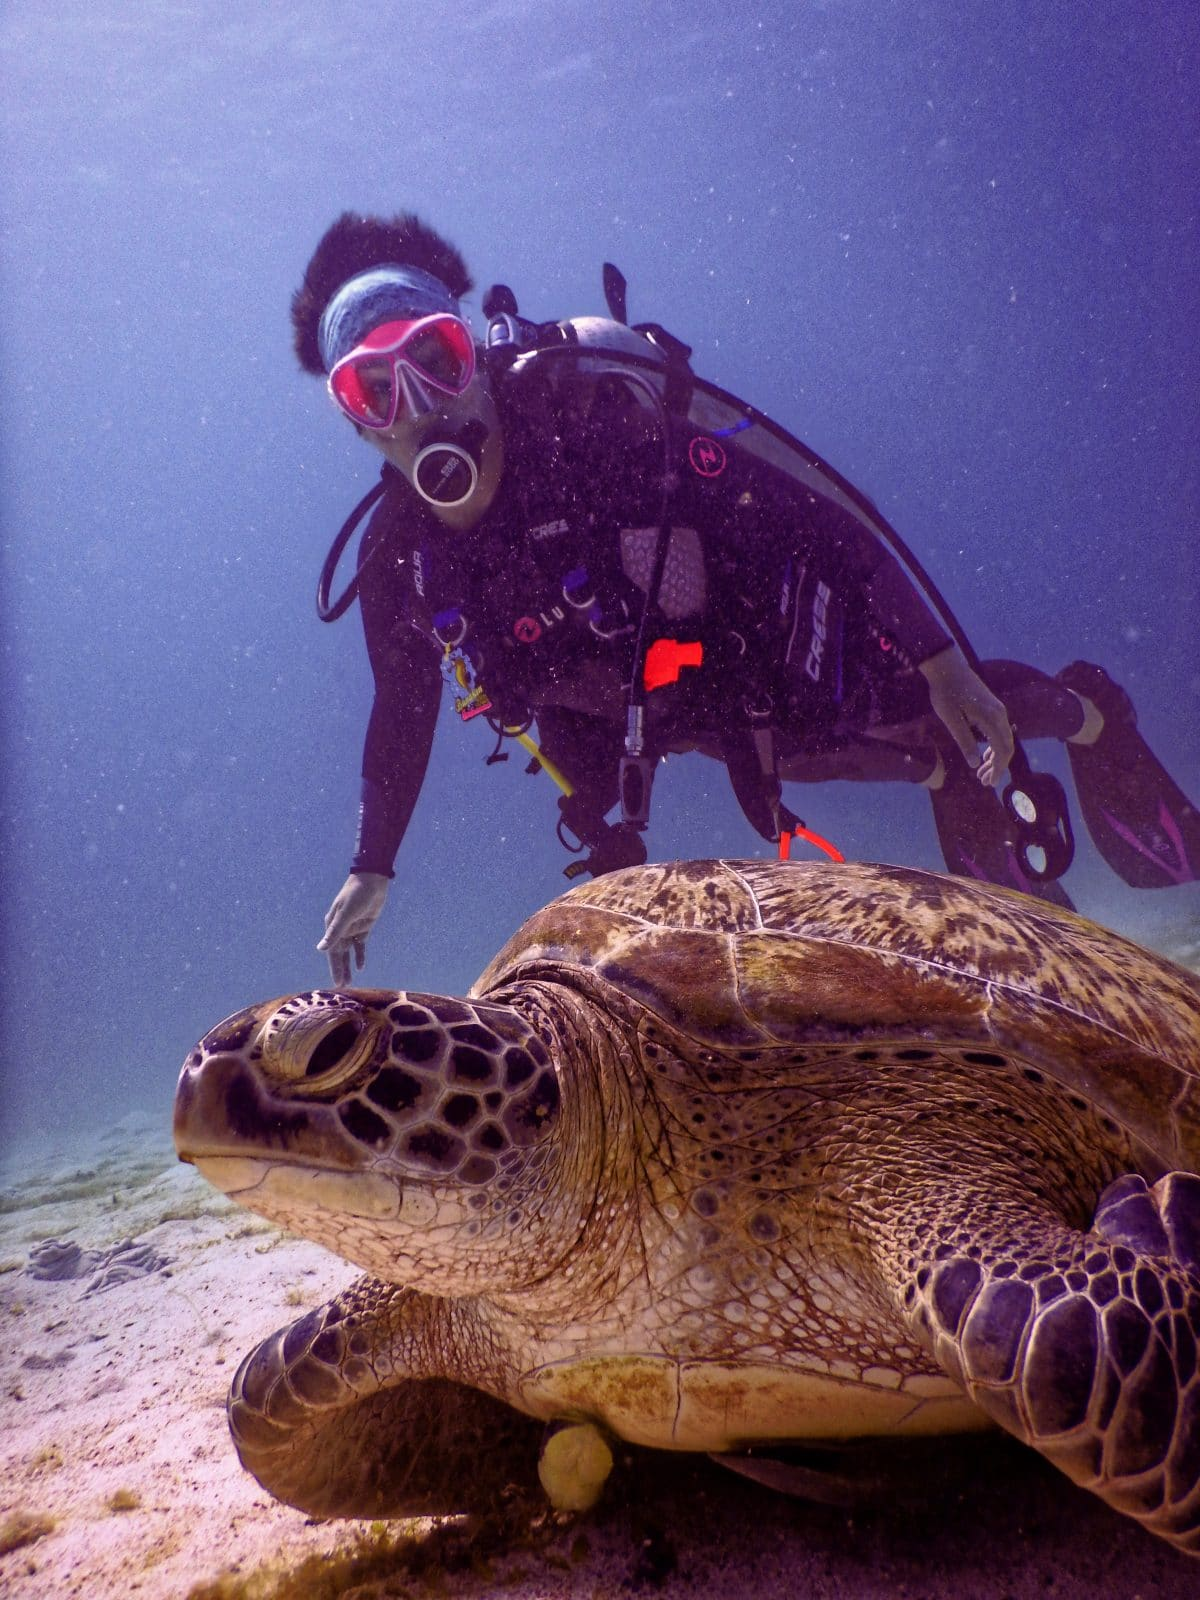 Photo of a man and turtle underwater